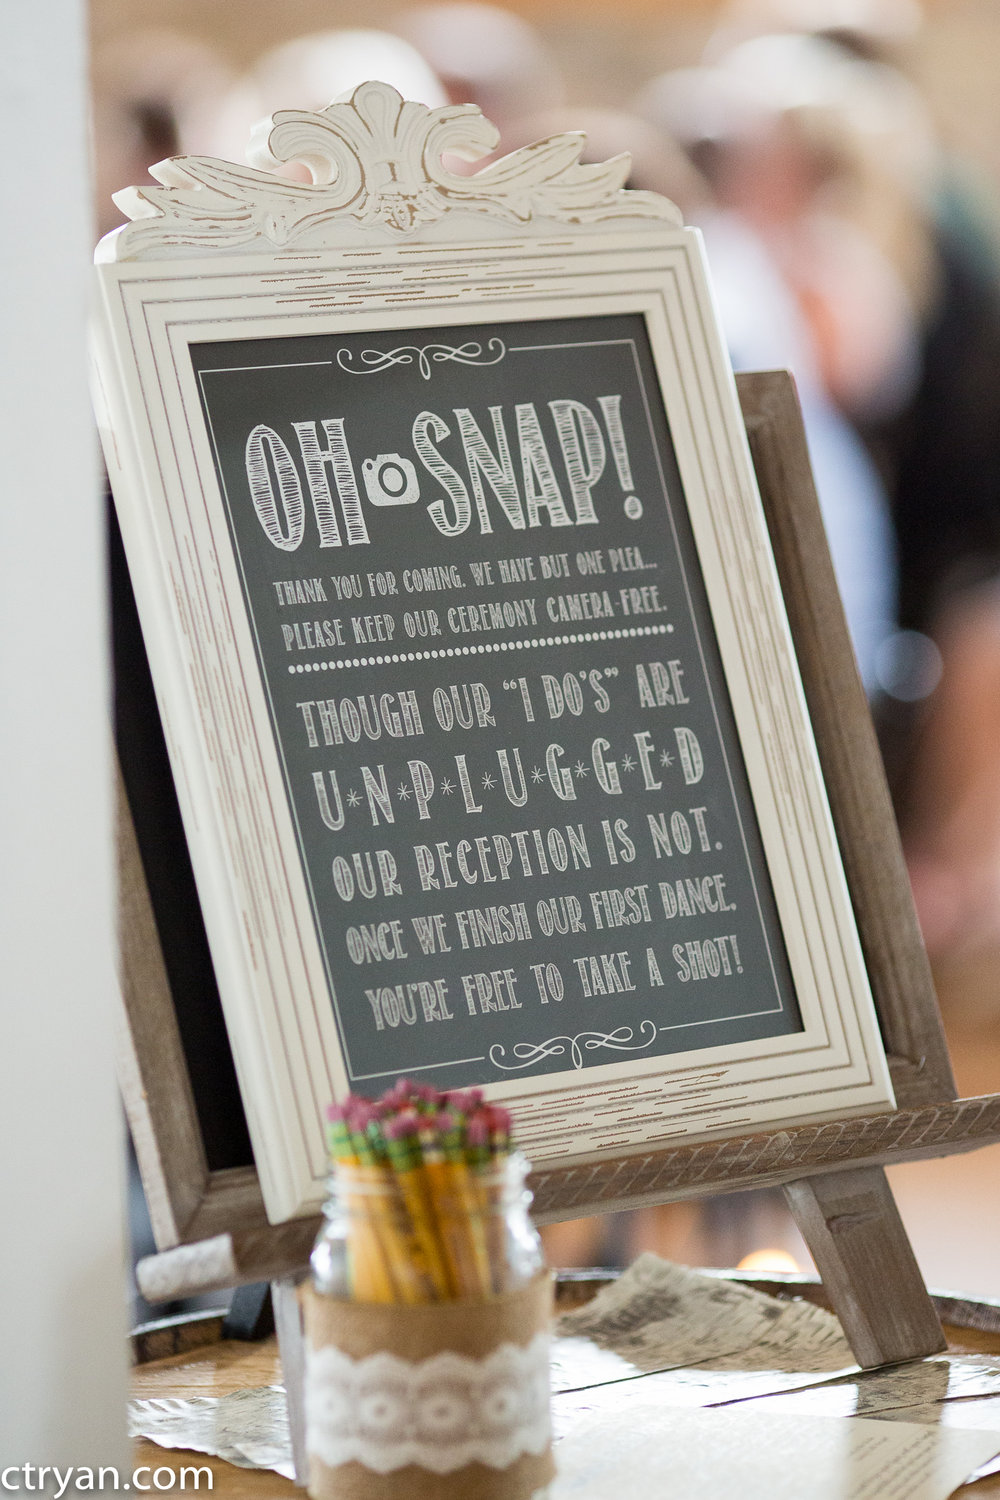 Acowsay_Minnesota_Wedding_Sign.jpg